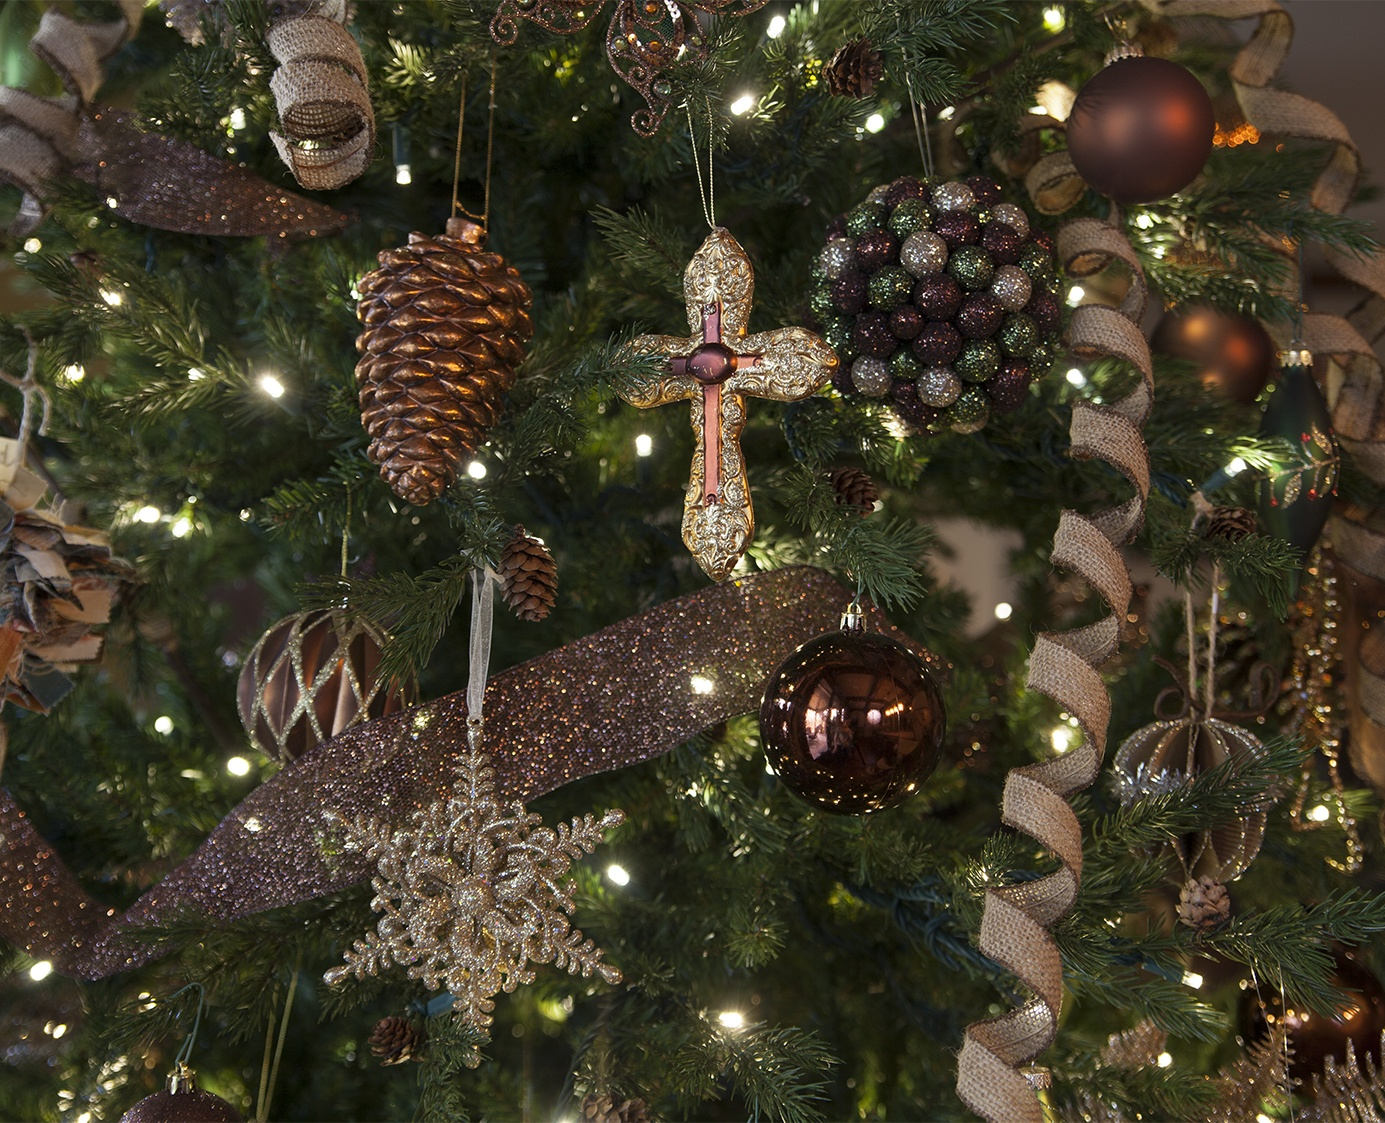 brown, bronze and gold tree ornaments